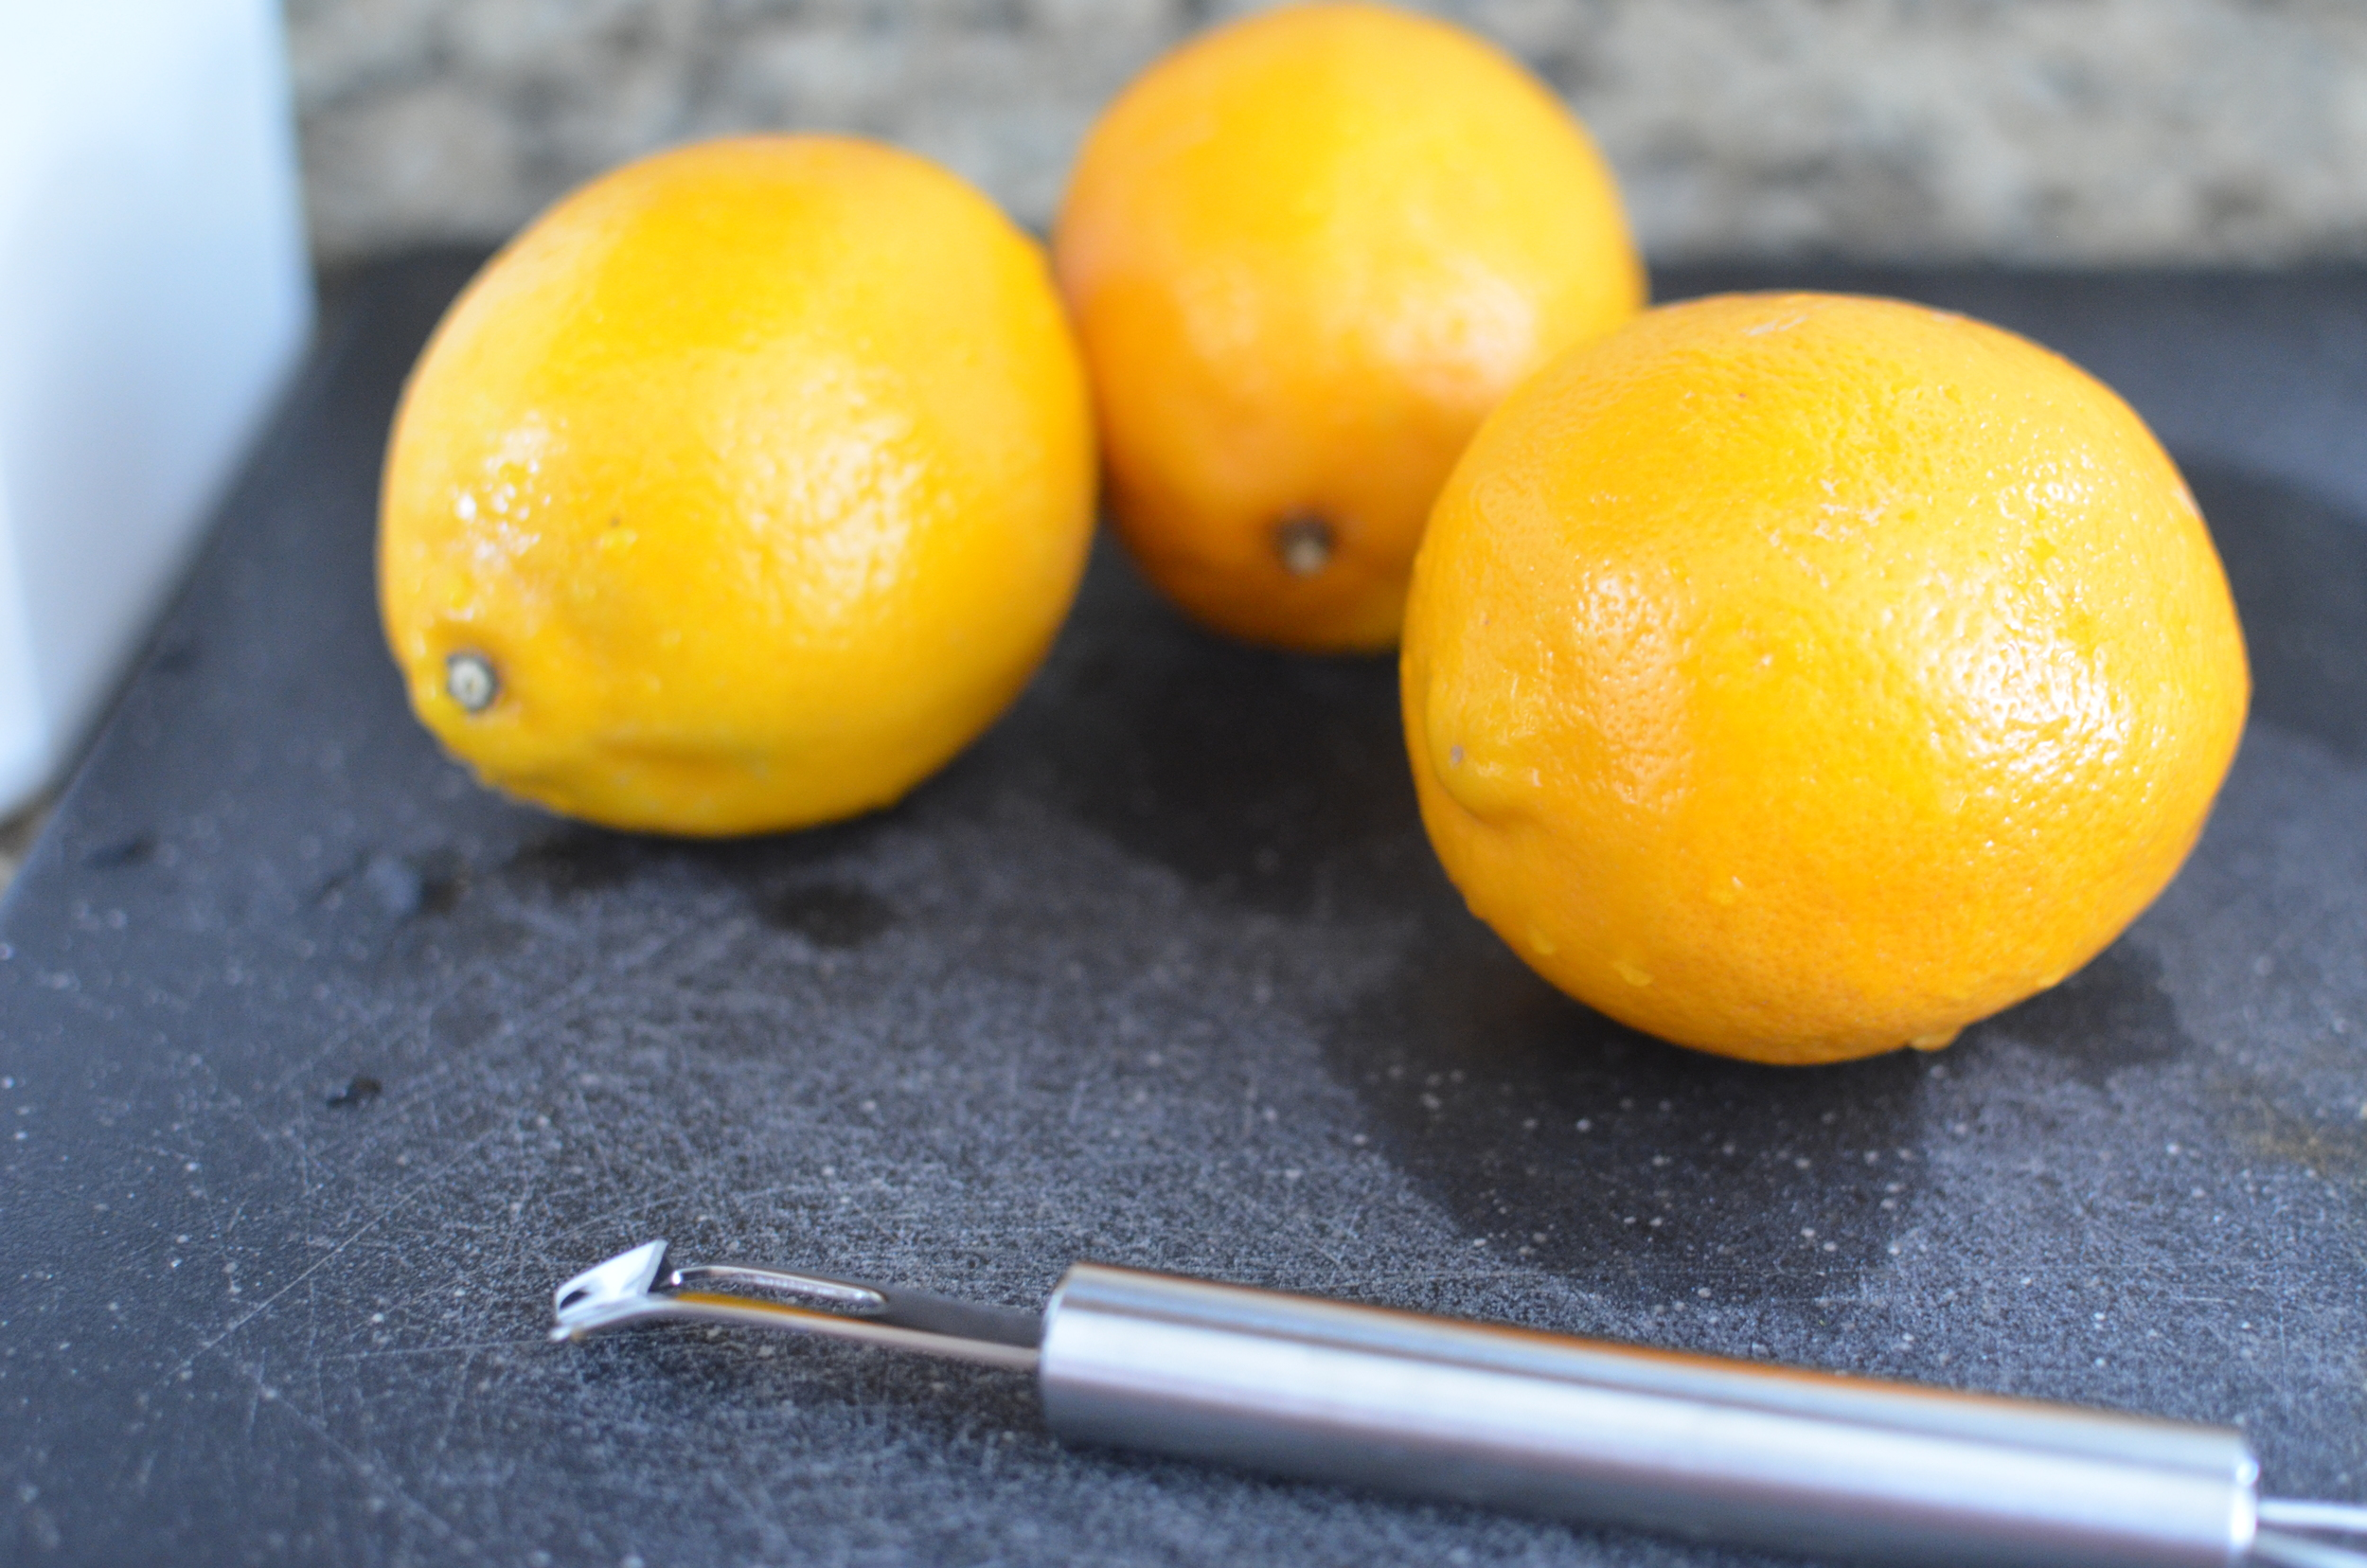 This recipe calls for Meyer lemons - a cross between traditional lemons and tangerines. They're a little less acidic than commonEureka lemons.